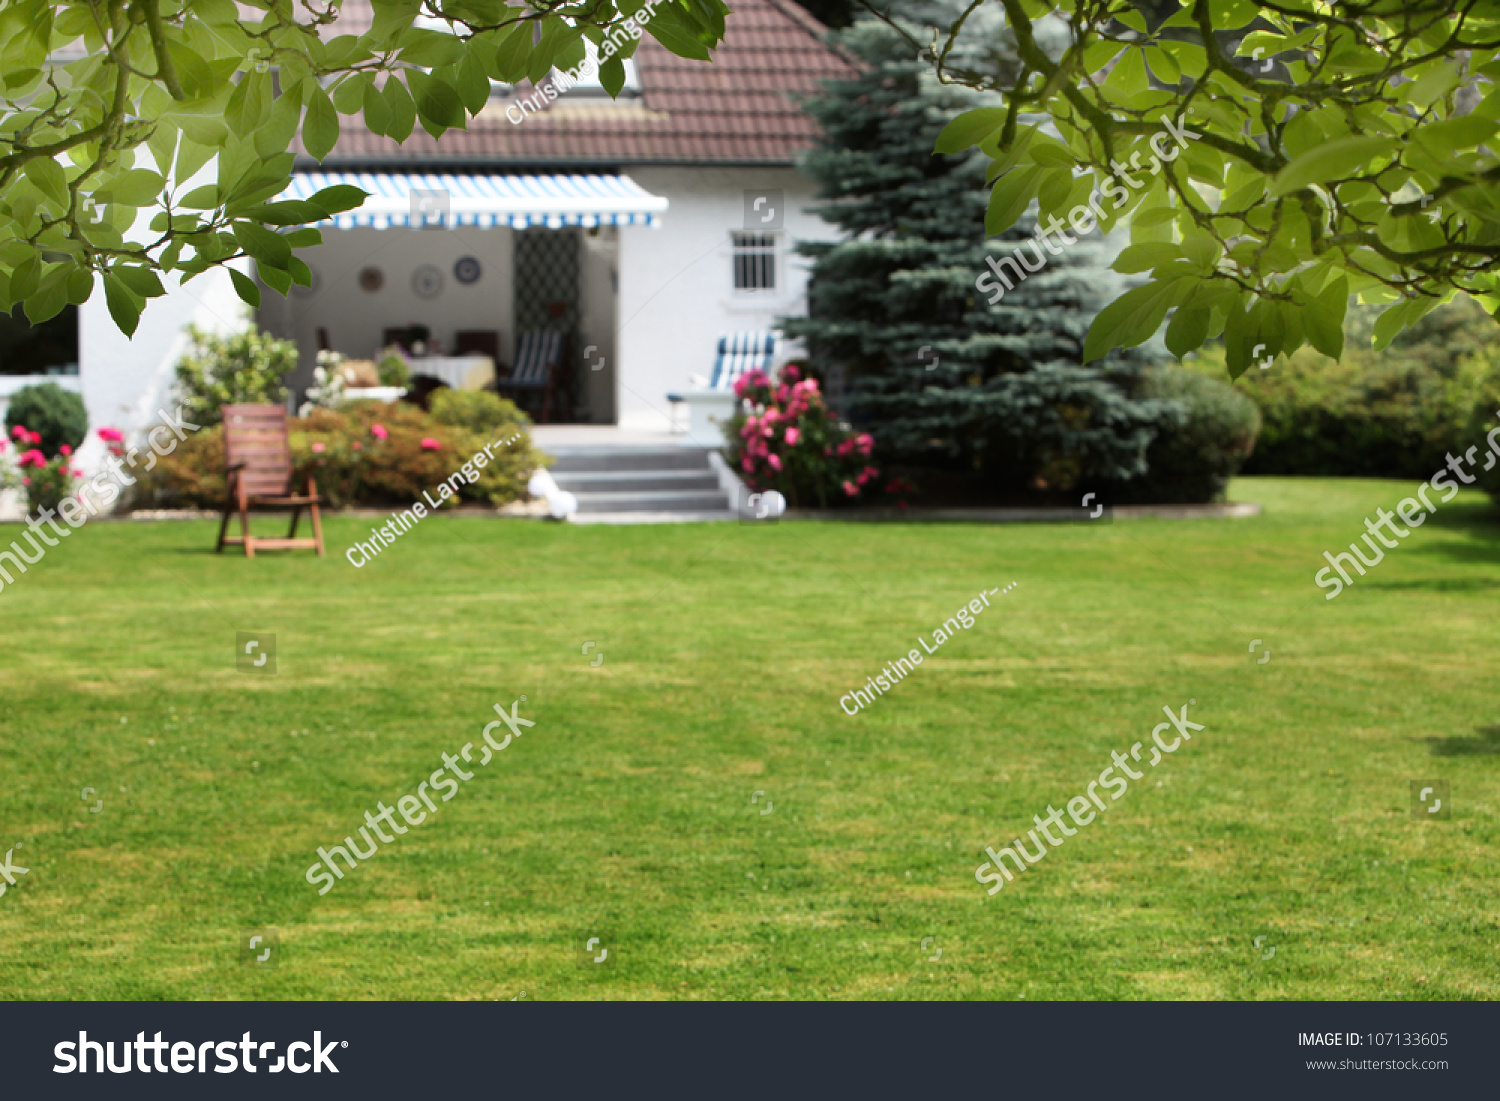 Small house beautiful garden small house stock photo for Garden house small